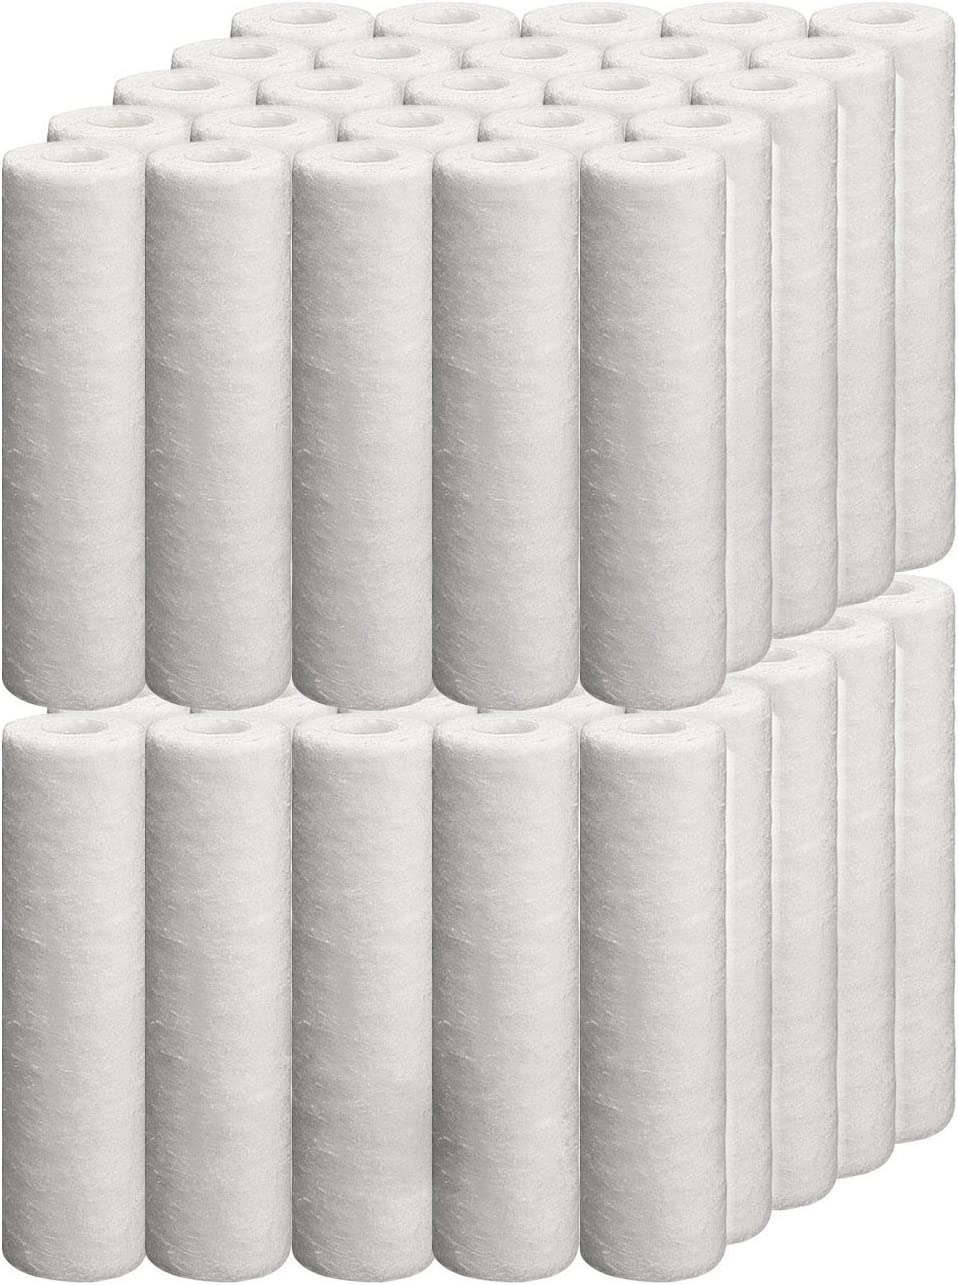 Denali Pure Brand Universal 10-inch 5-Micron Cartridge Compatible with US Water 50 to 150 GPD RO-DI System 6-Pack Replacement for US Water Systems 200-RO-DI Polypropylene Sediment Filter